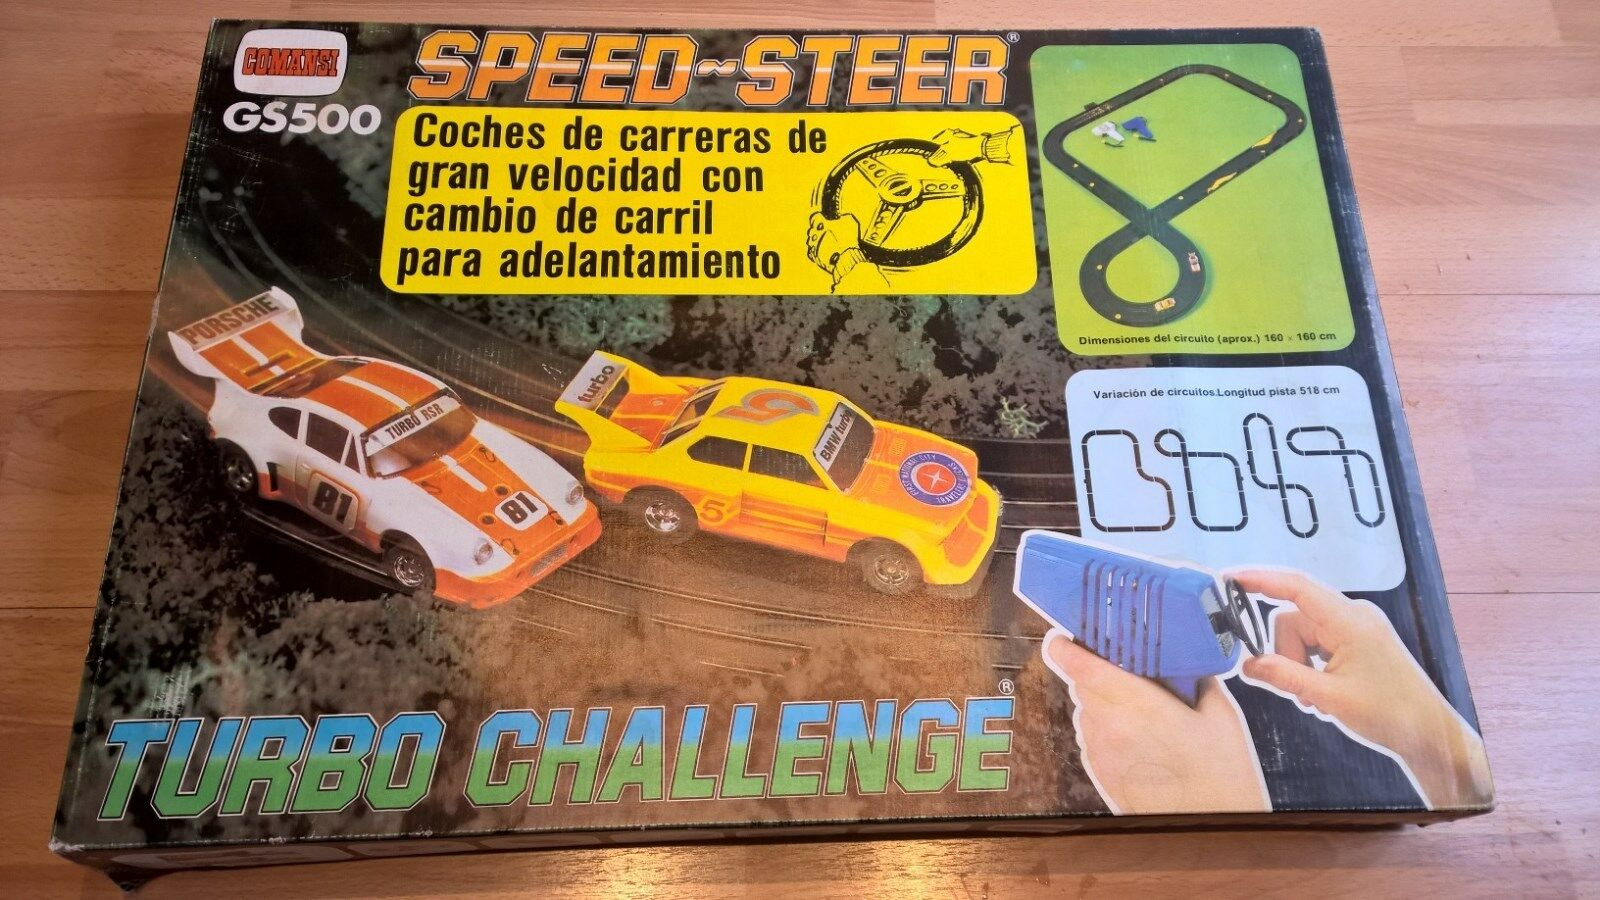 Comansi AFX GS500 Speedsteer Turbo Challenge Set BNIB Sealed VERY RARE